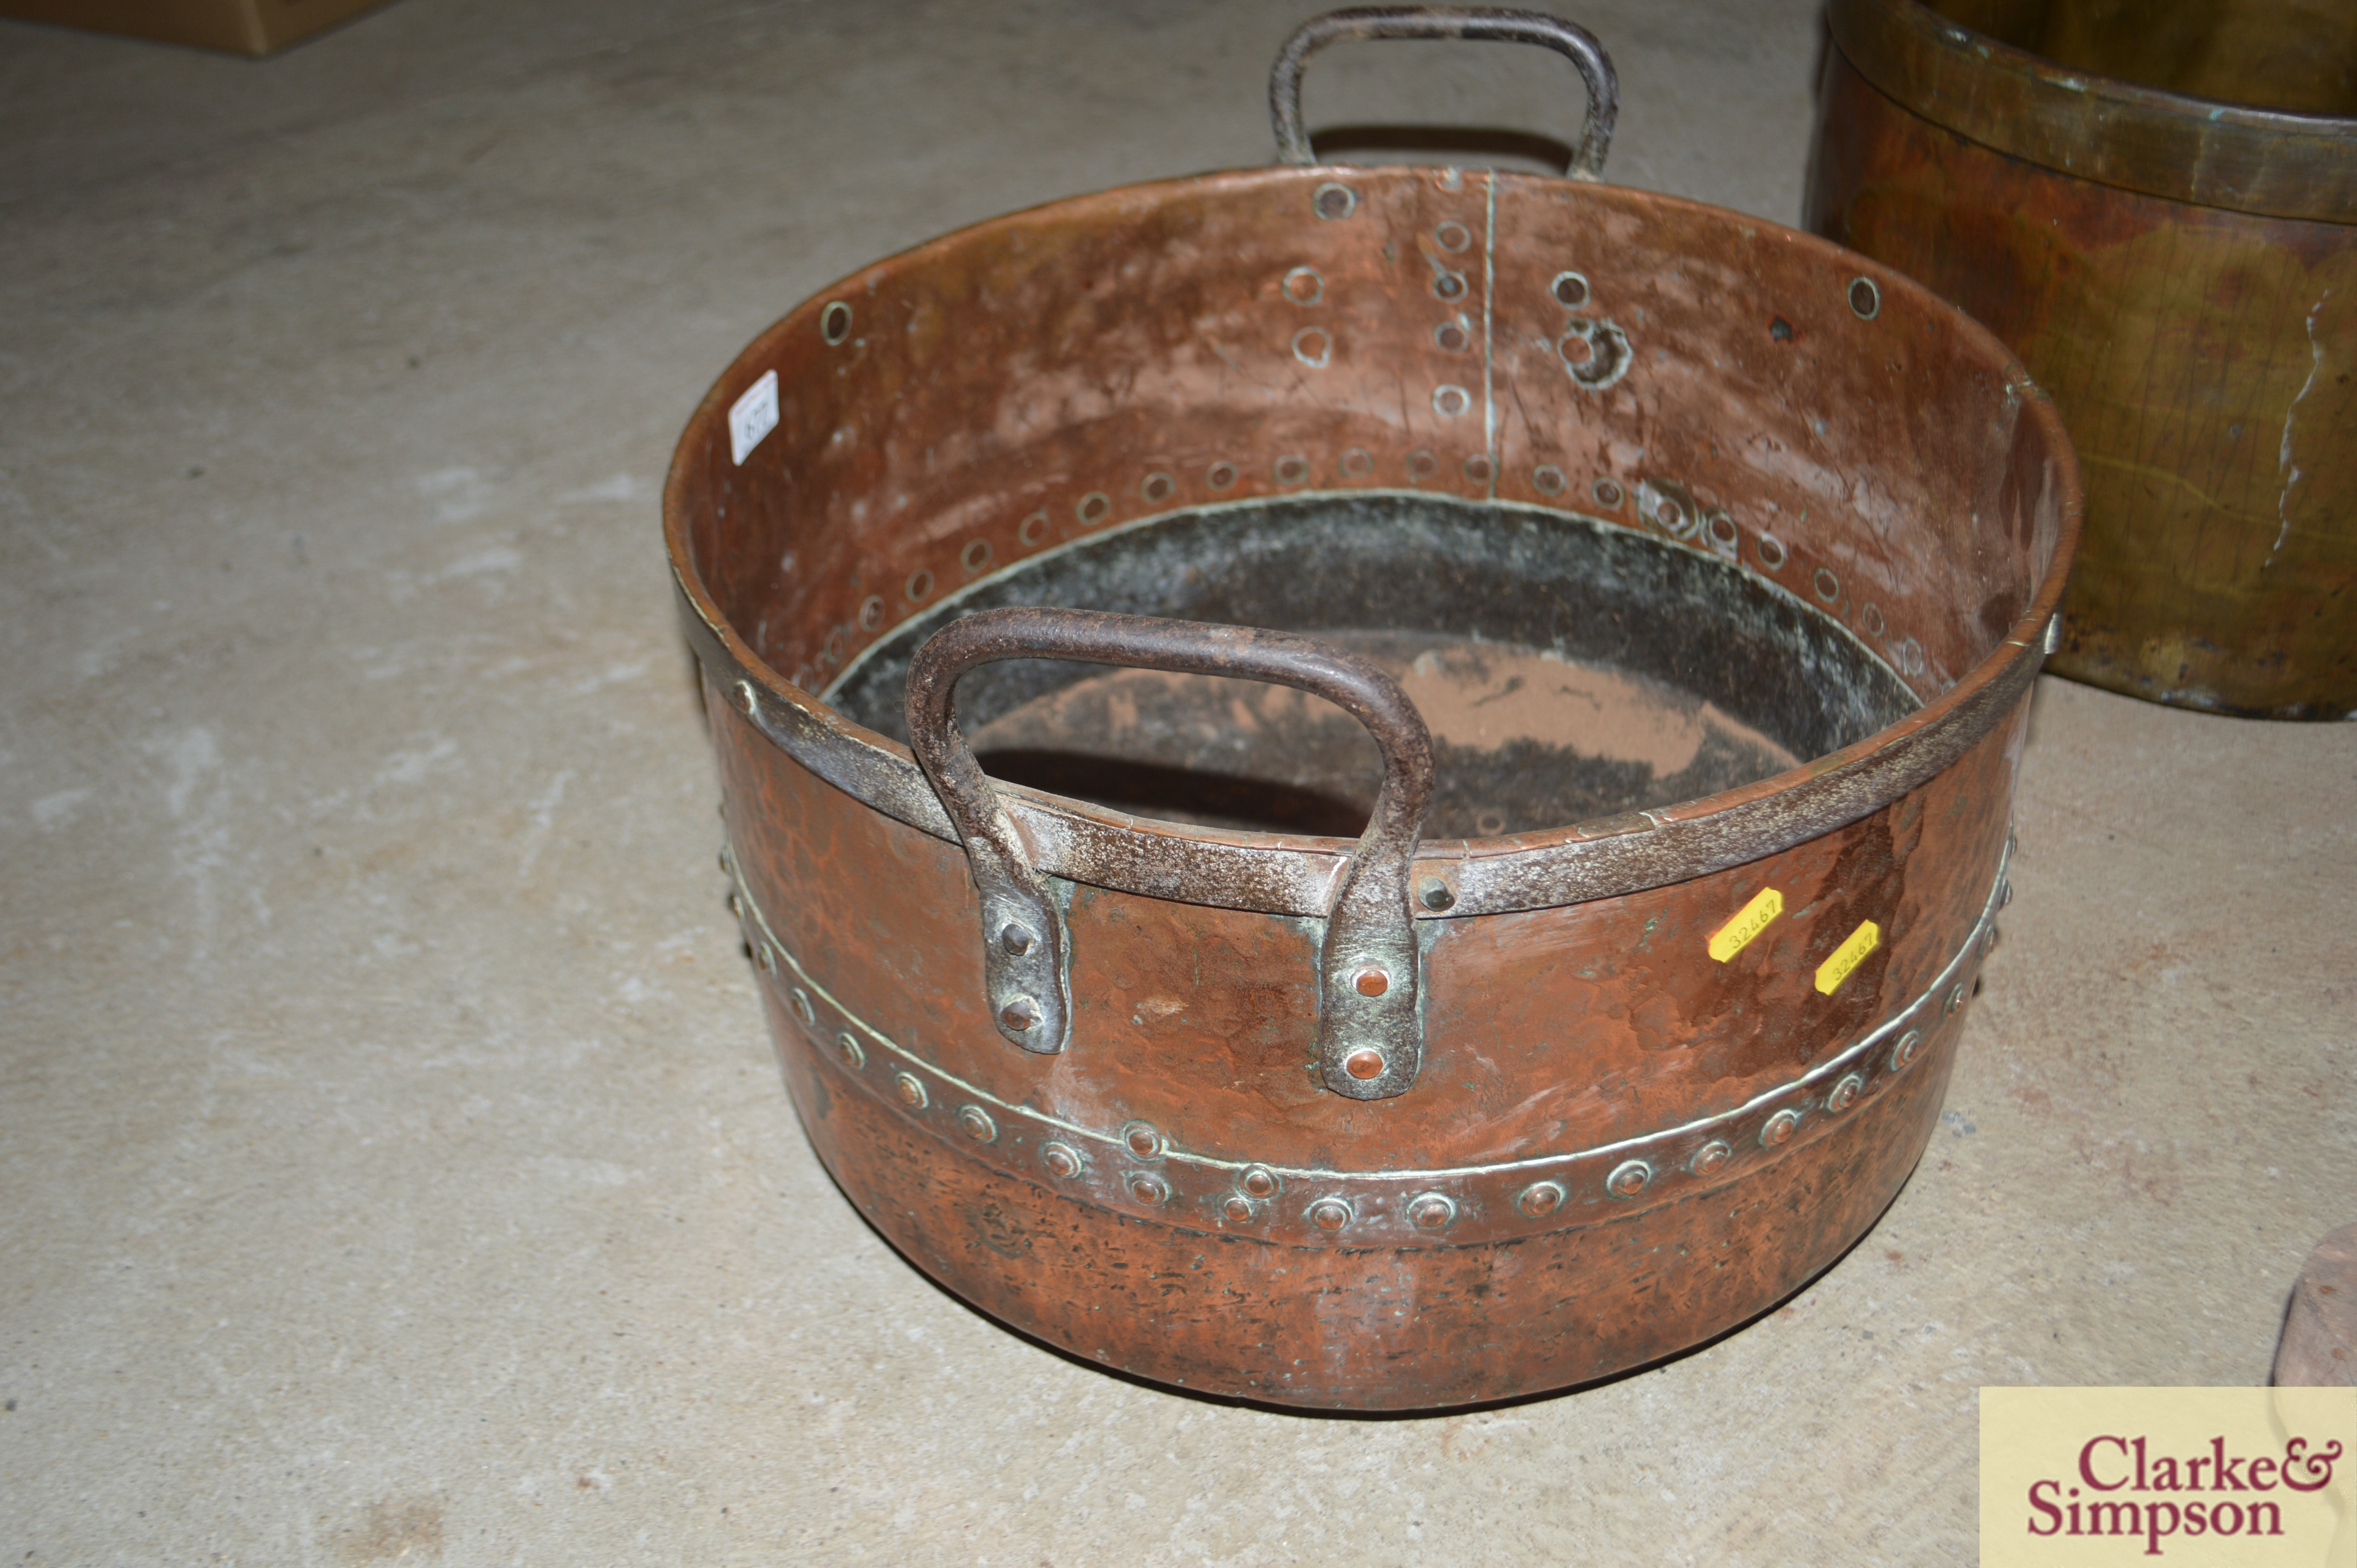 An antique riveted two handled cauldron - Image 4 of 4